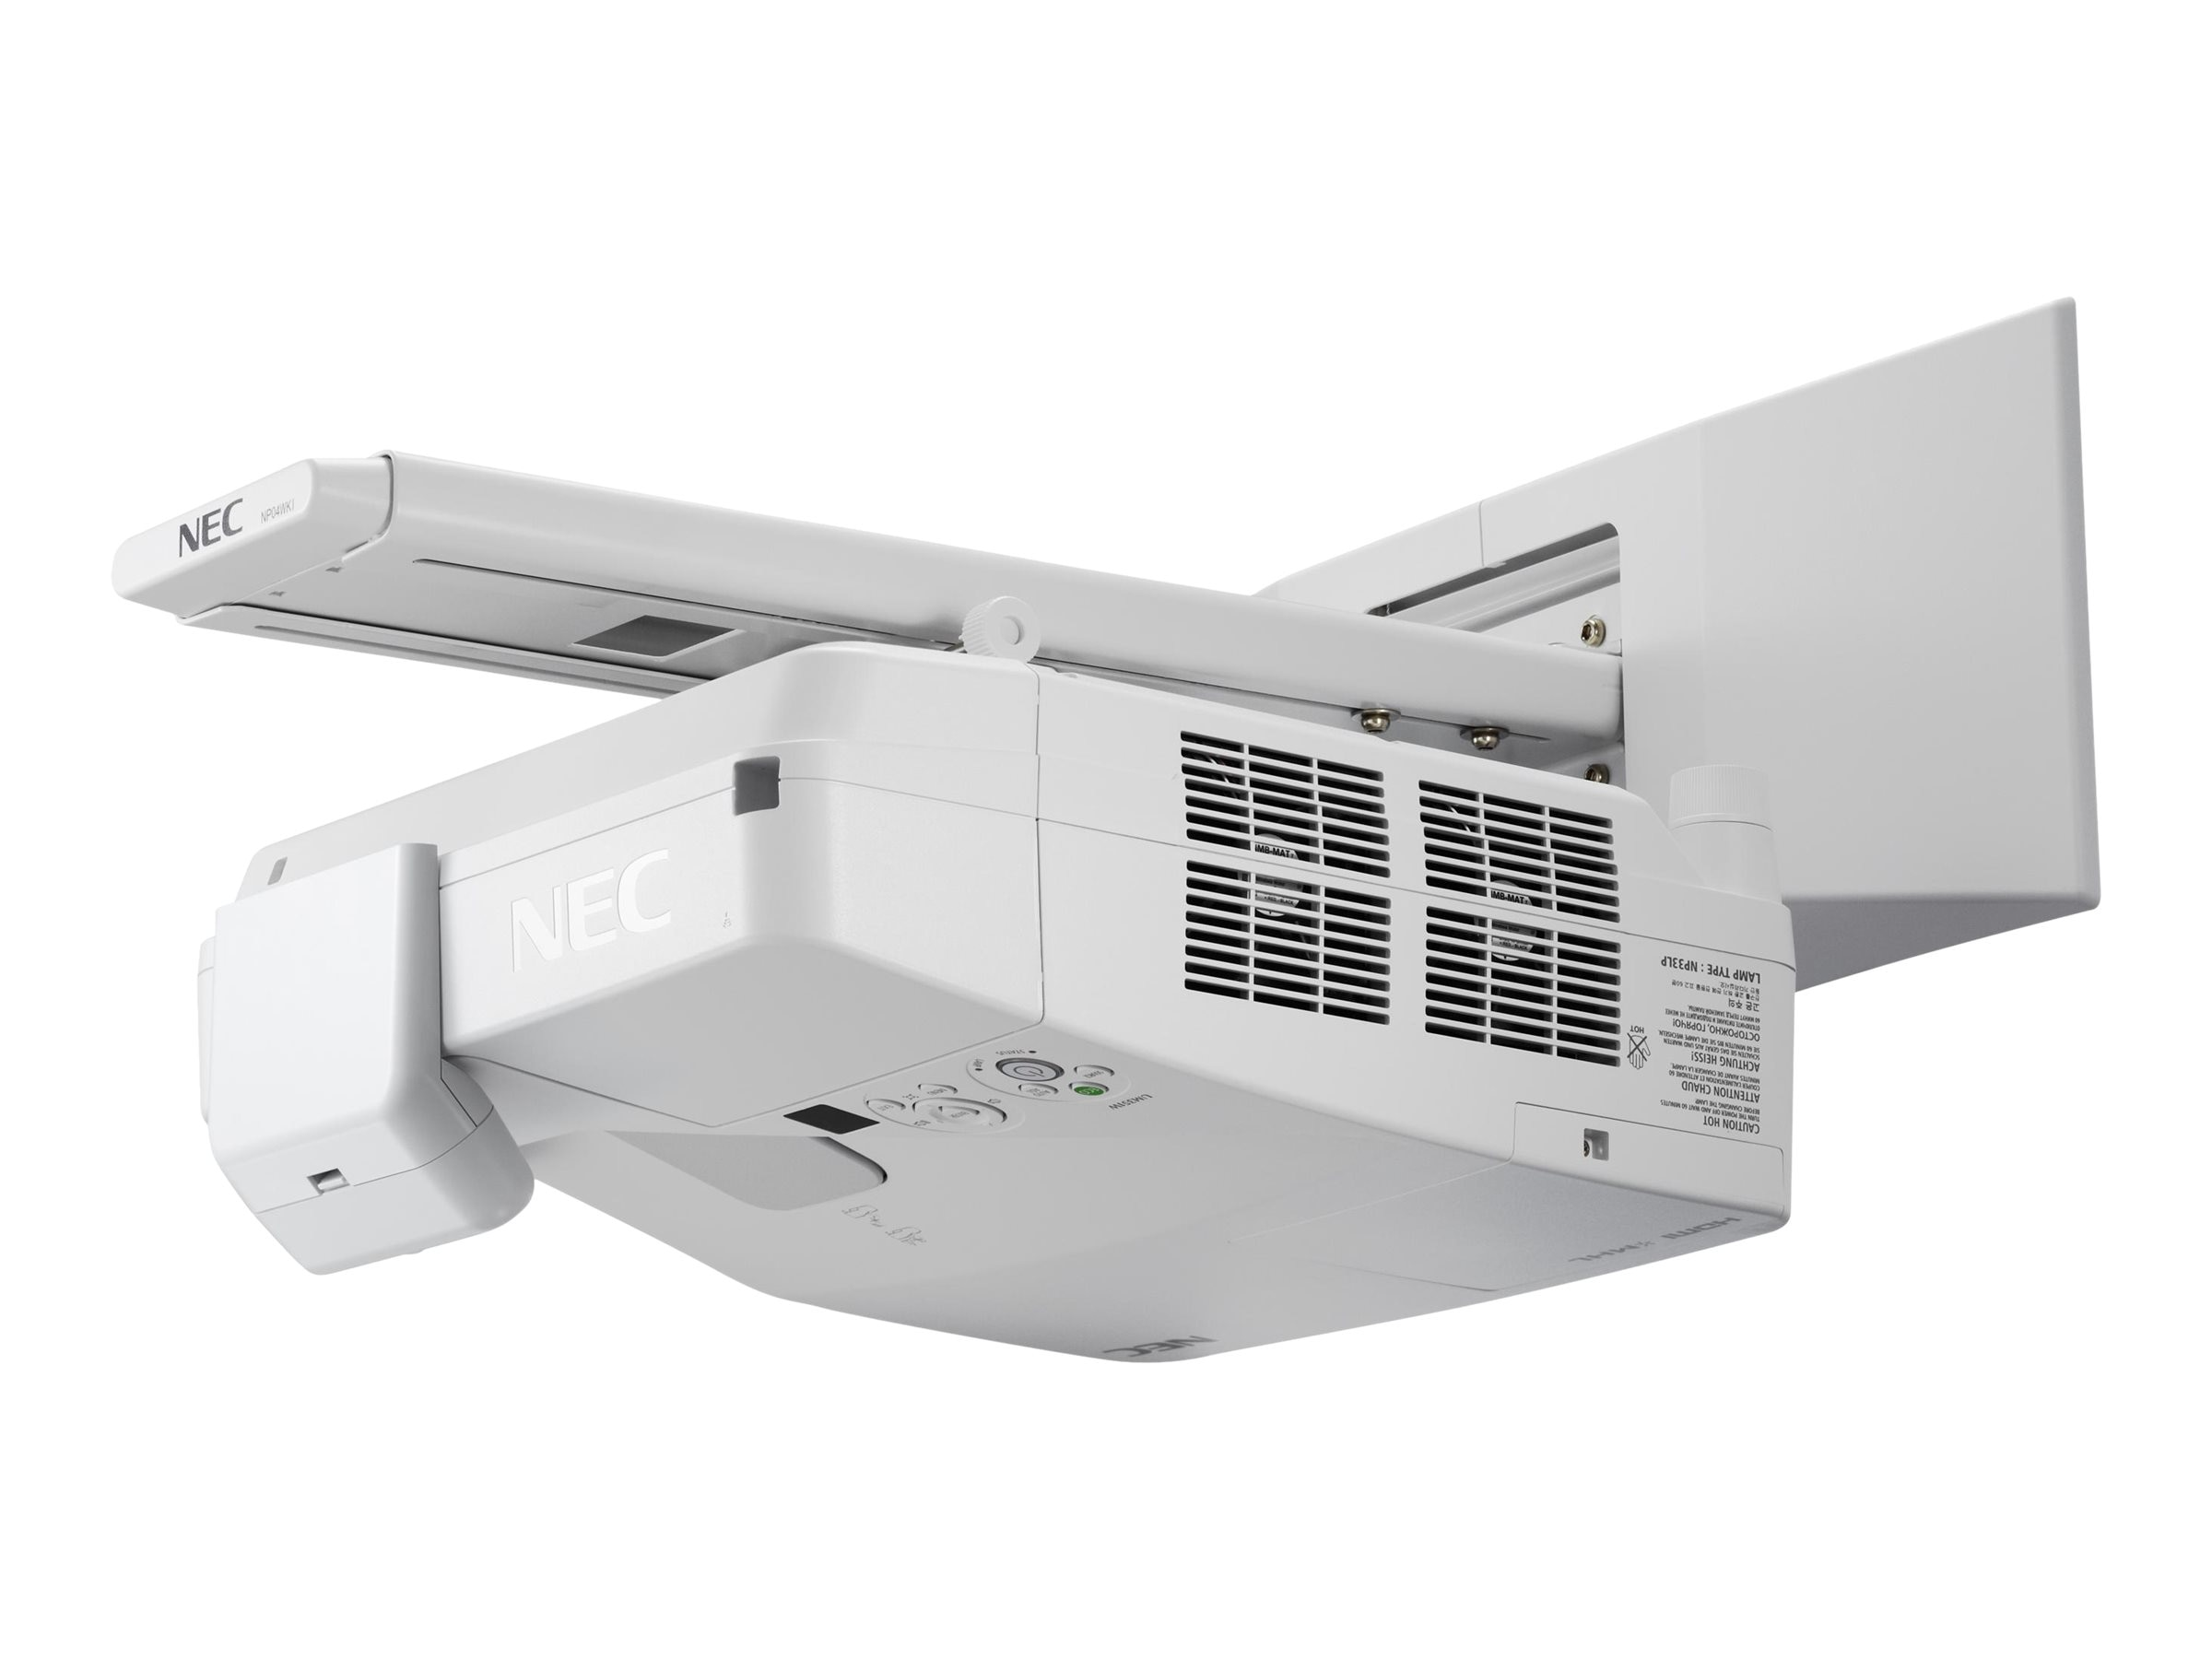 NEC UM361X Ultra Short Throw LCD Interactive Projector, 3600 Lumens, White with Wall Mount, Touch Module, NP-UM361XI-TM